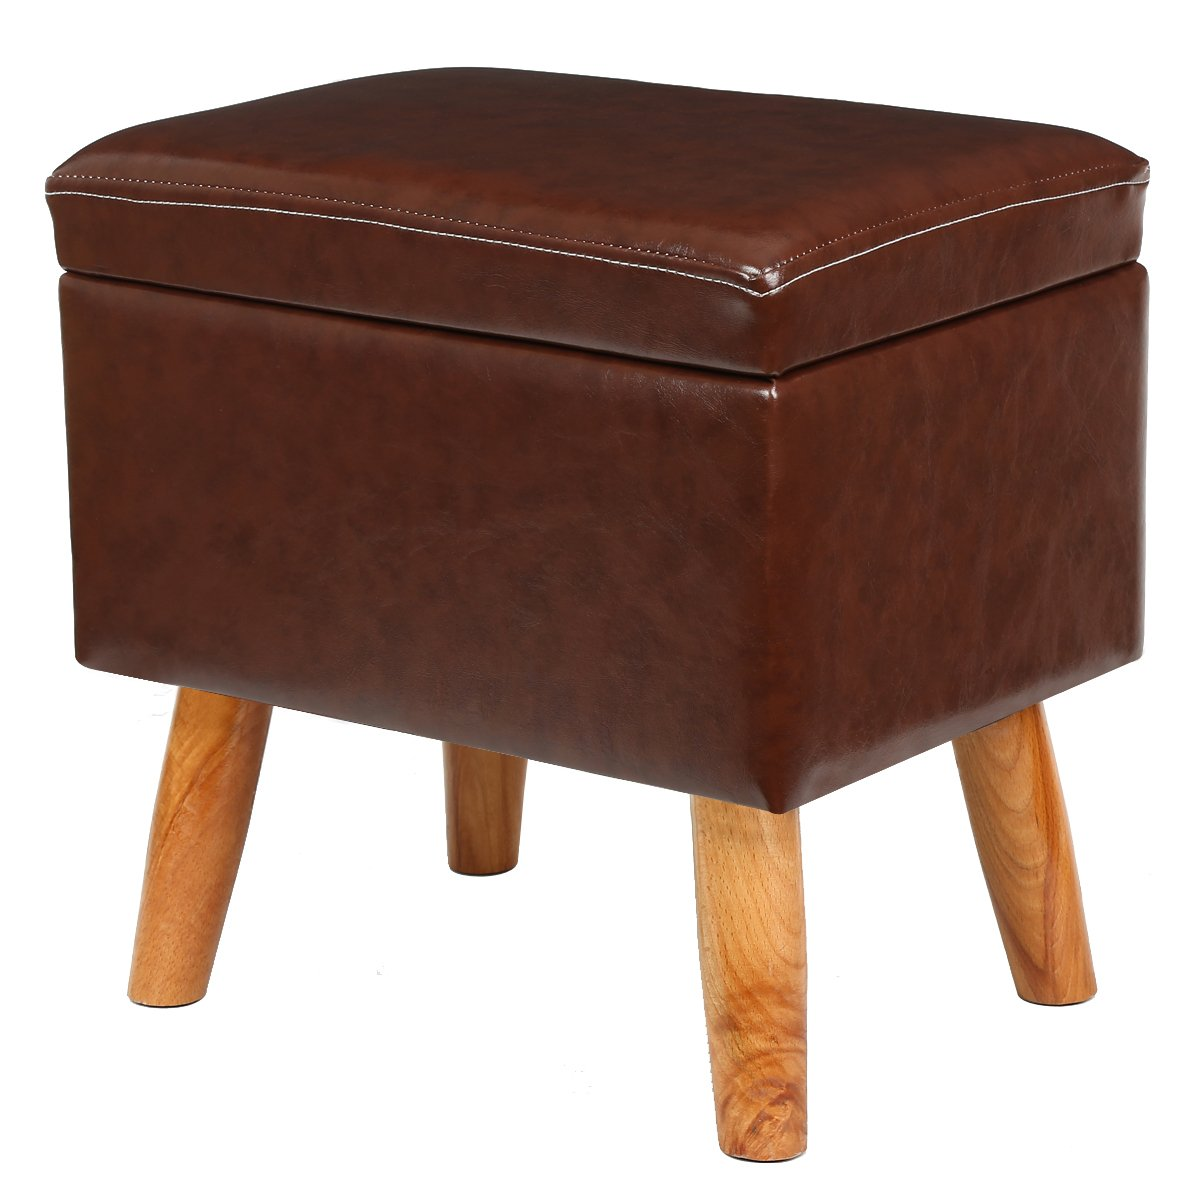 Eshow Ottoman and Storage Foot Stools Ottoman with Storage Decorative Shoe Bench Leather Storage Ottoman Cube Multifunctional Footstool Brown